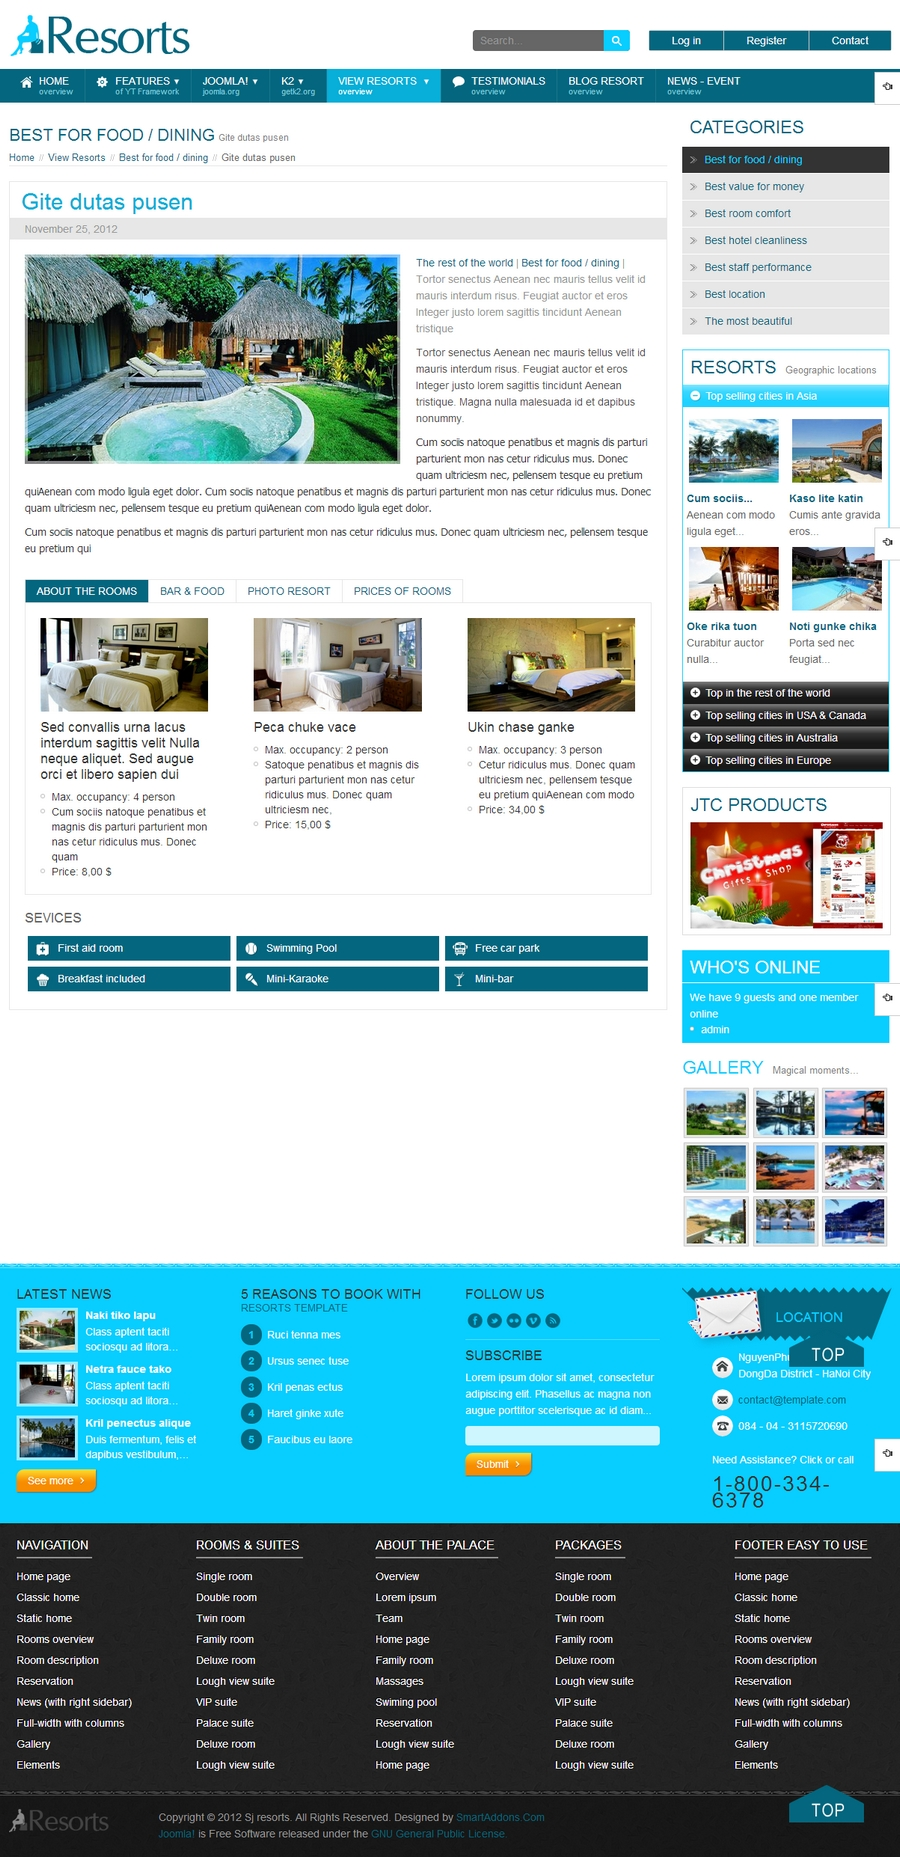 SJ Resorts - Responsive Joomla Resorts & spa Template - 07sobientry.jpg